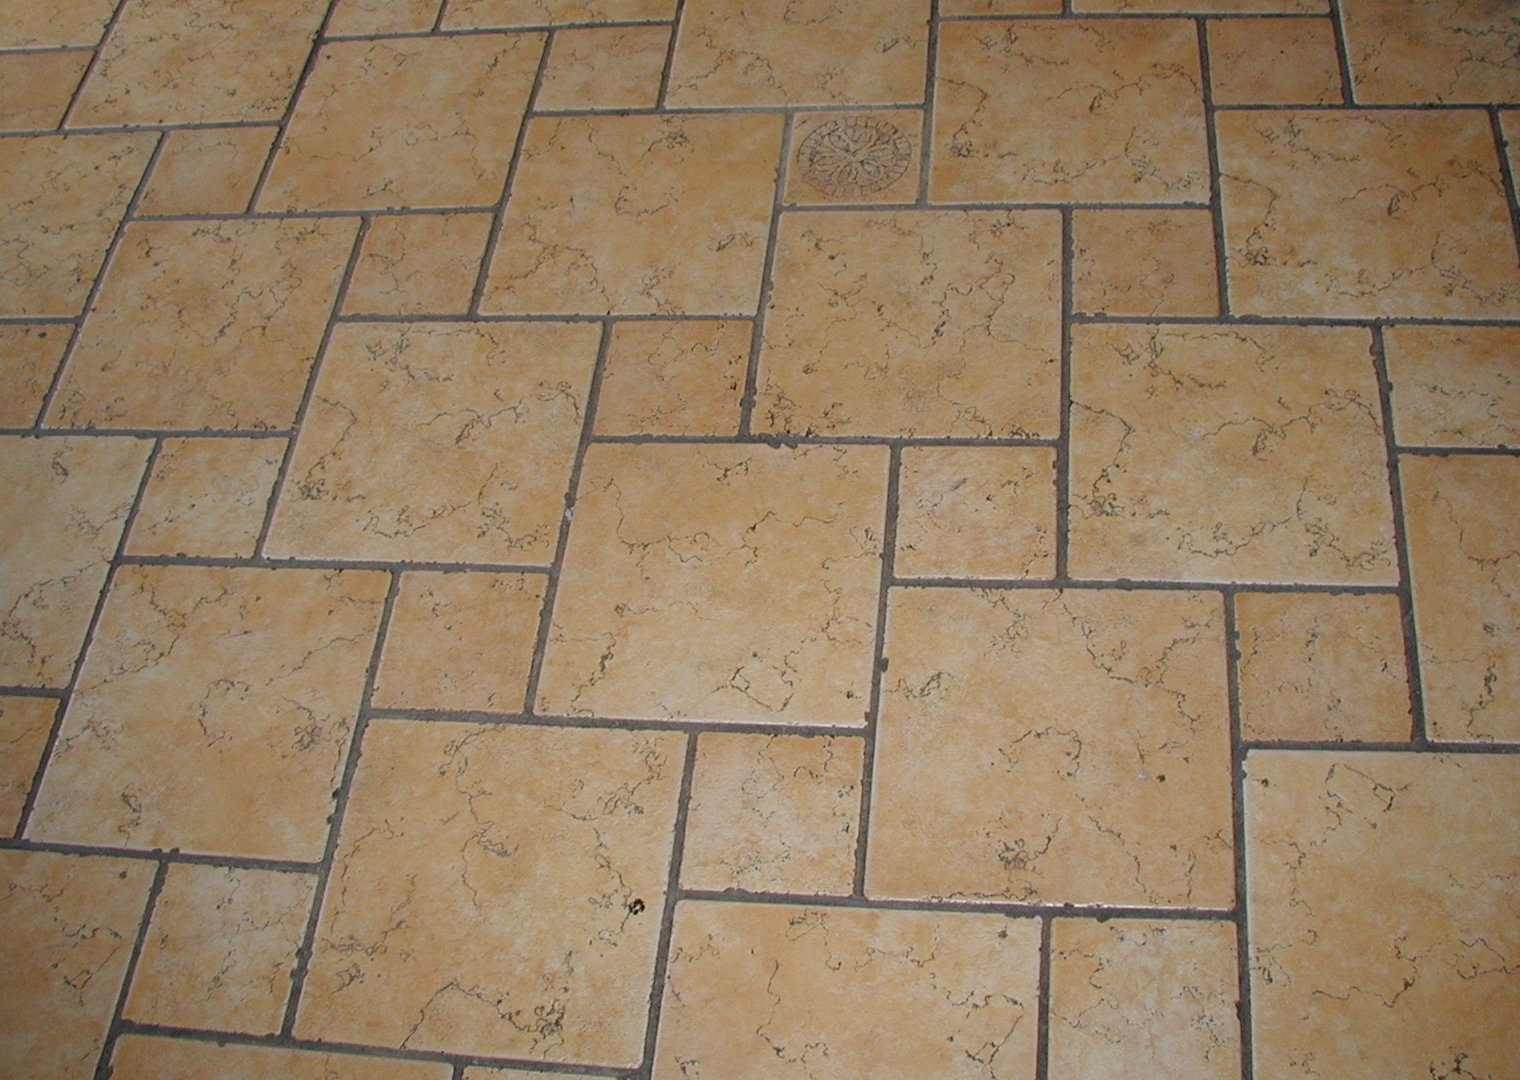 How to choose tile flooring for your home bill beazley homes image source wikipedia commons dailygadgetfo Gallery